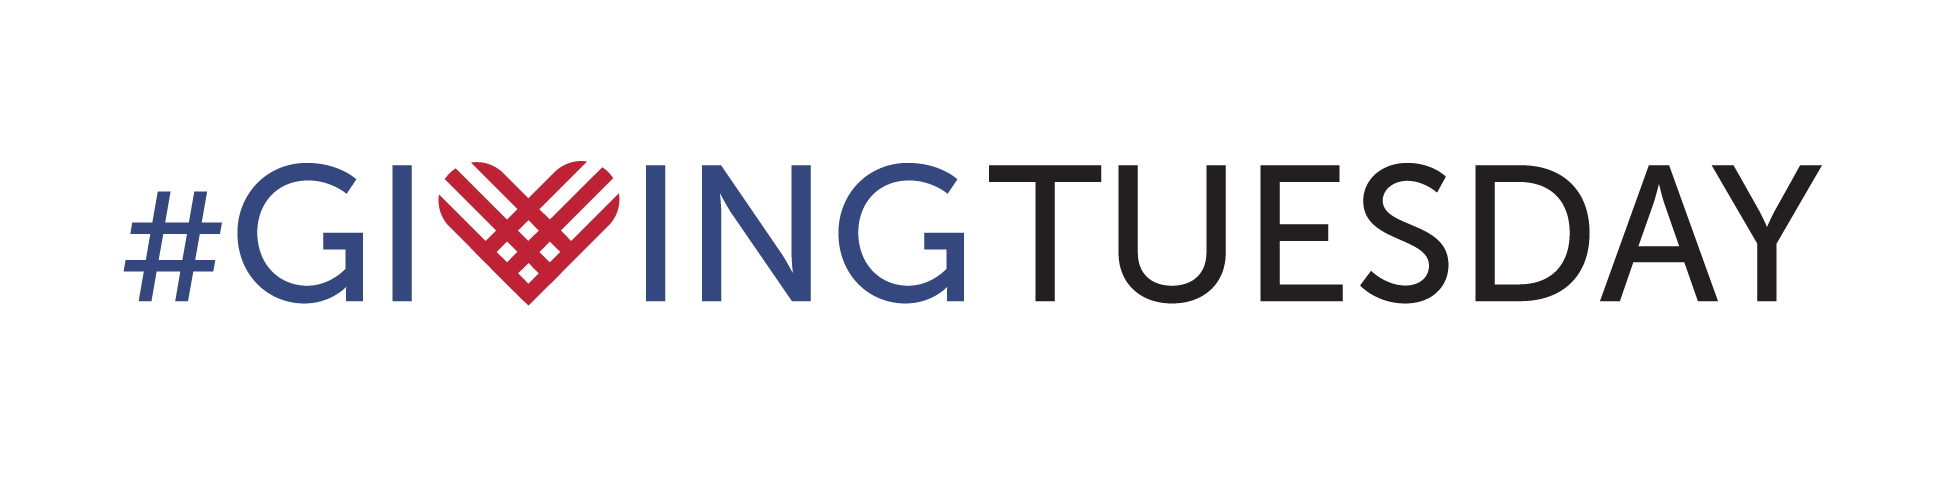 Join in #GivingTuesday in York, Tuesday, Nov. 28